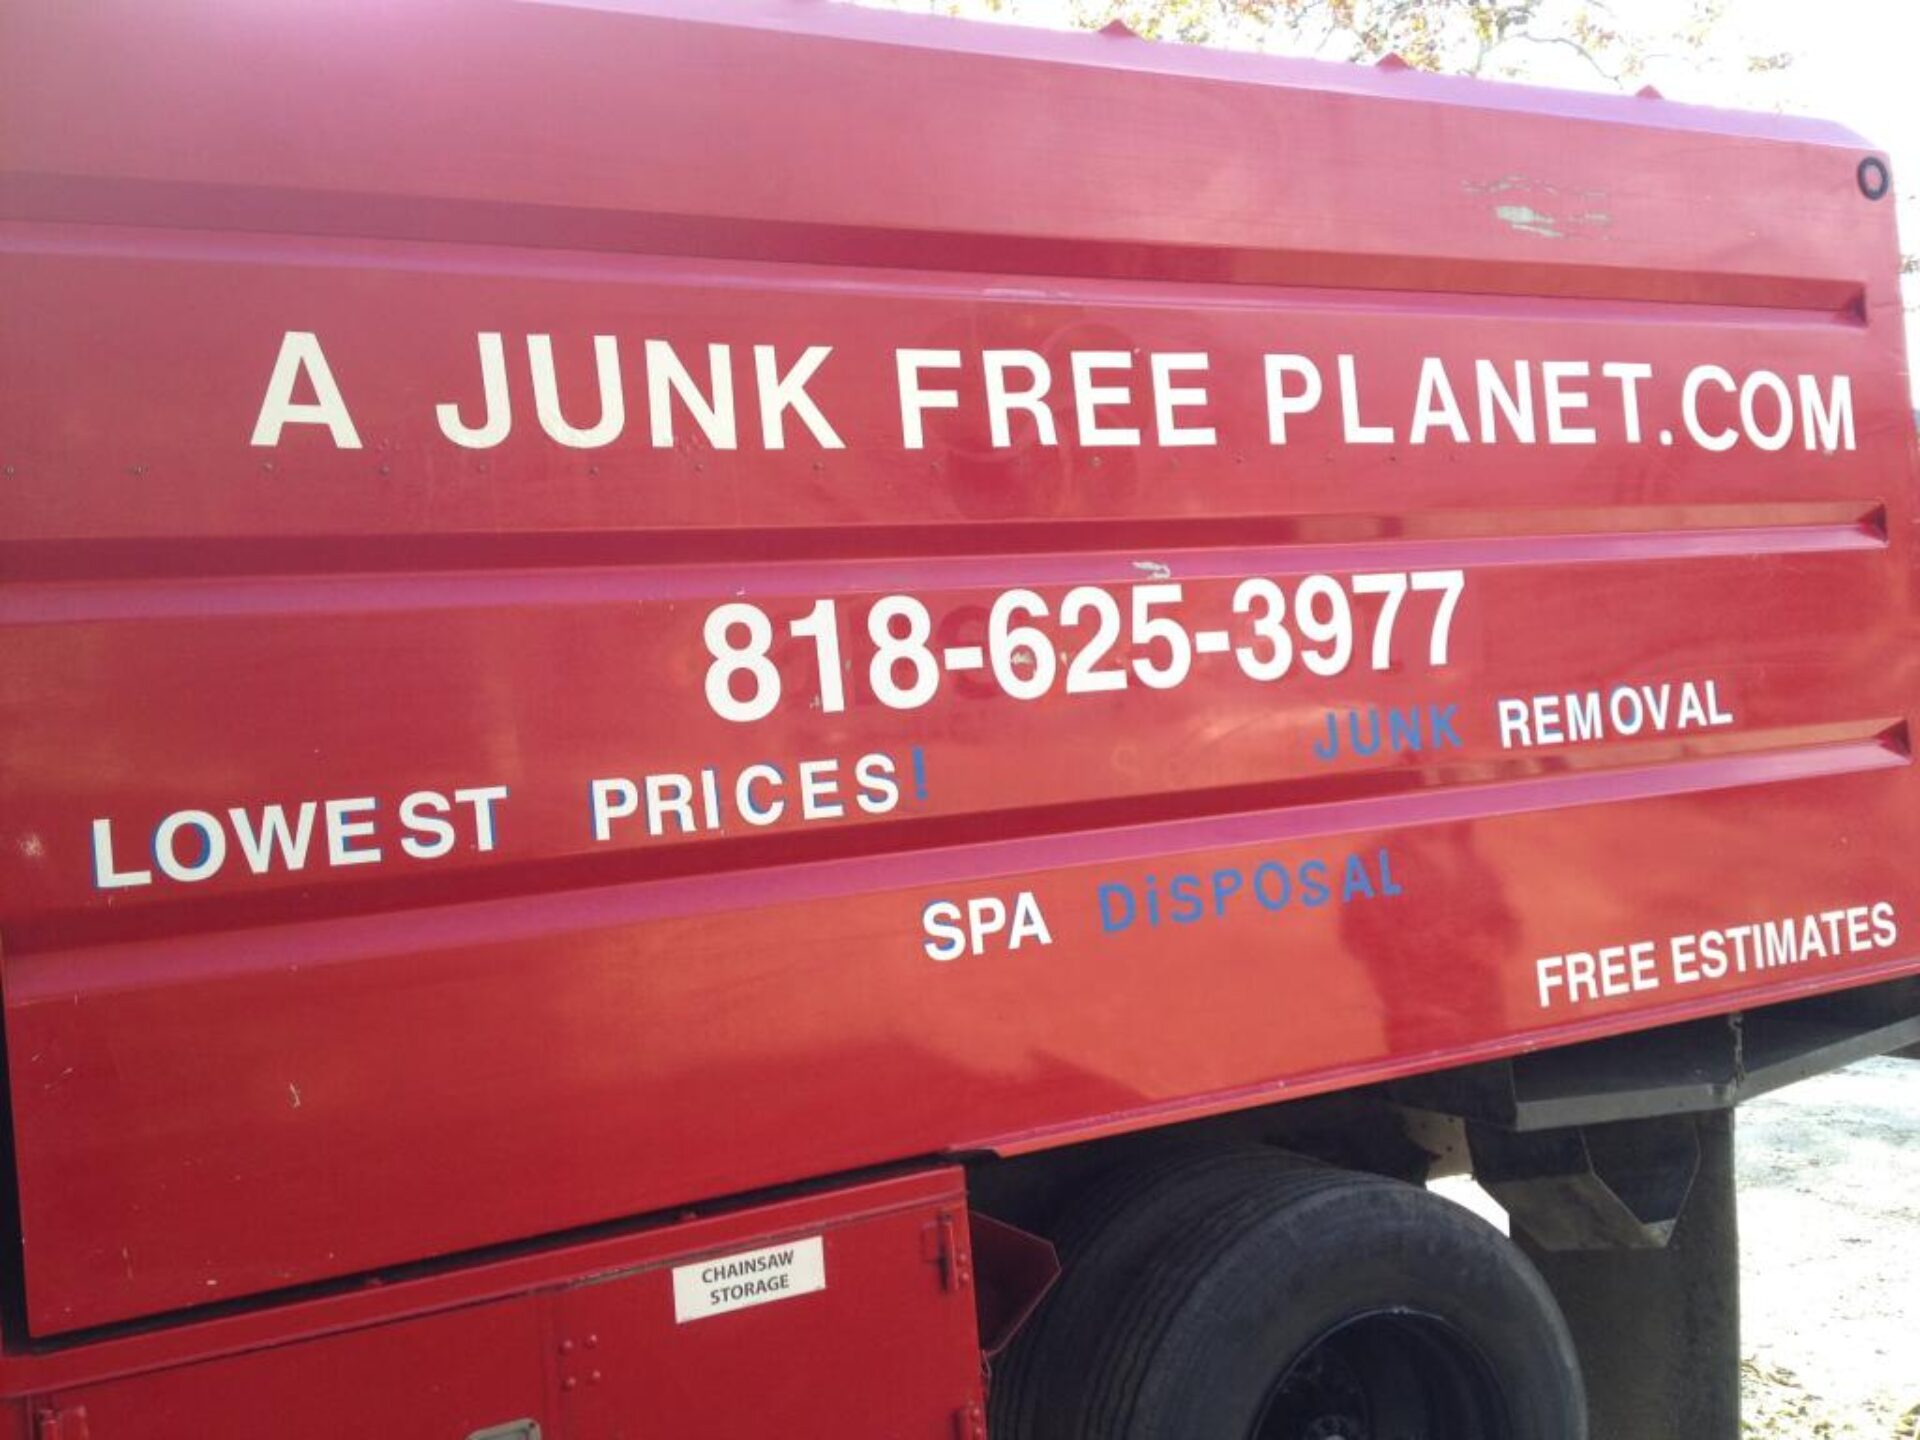 DUMPSTER RENTALS 24/7 SERVICE – JUNK HAULING – JUNK REMOVAL – HOT TUB REMOVAL SERVICE